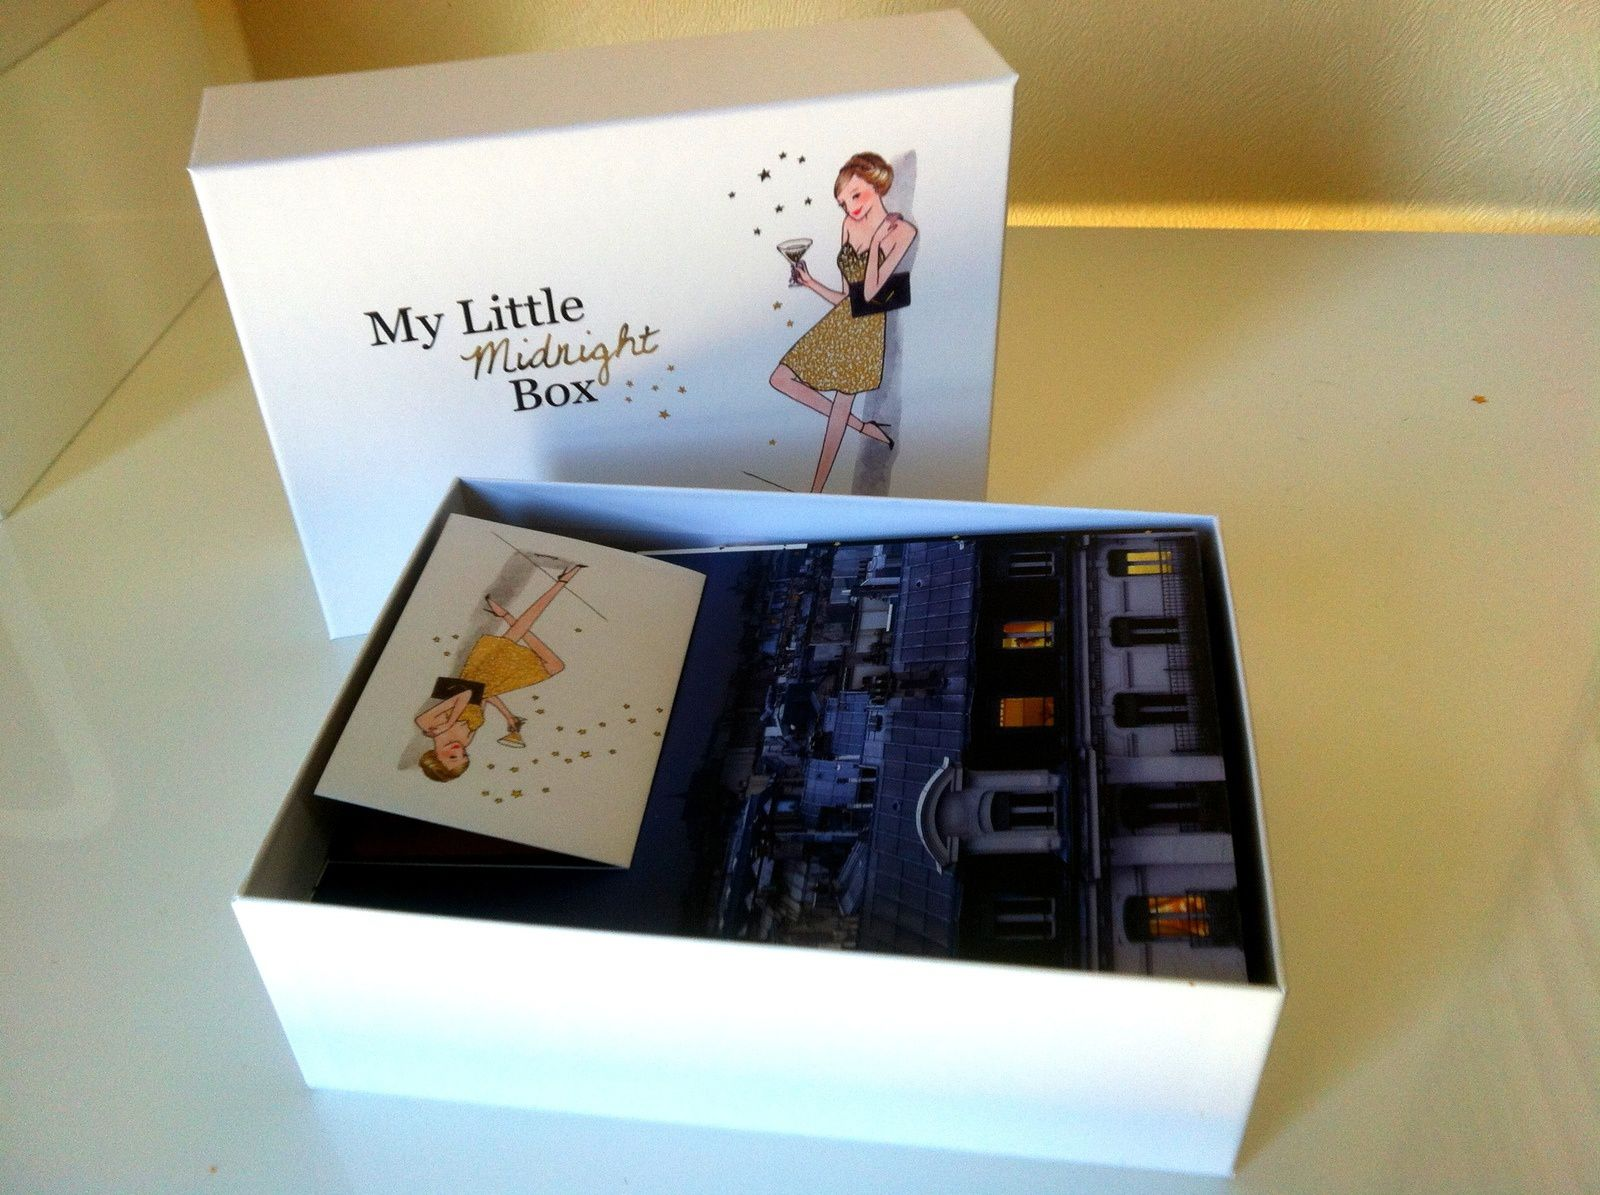 My little Midnight box de décembre